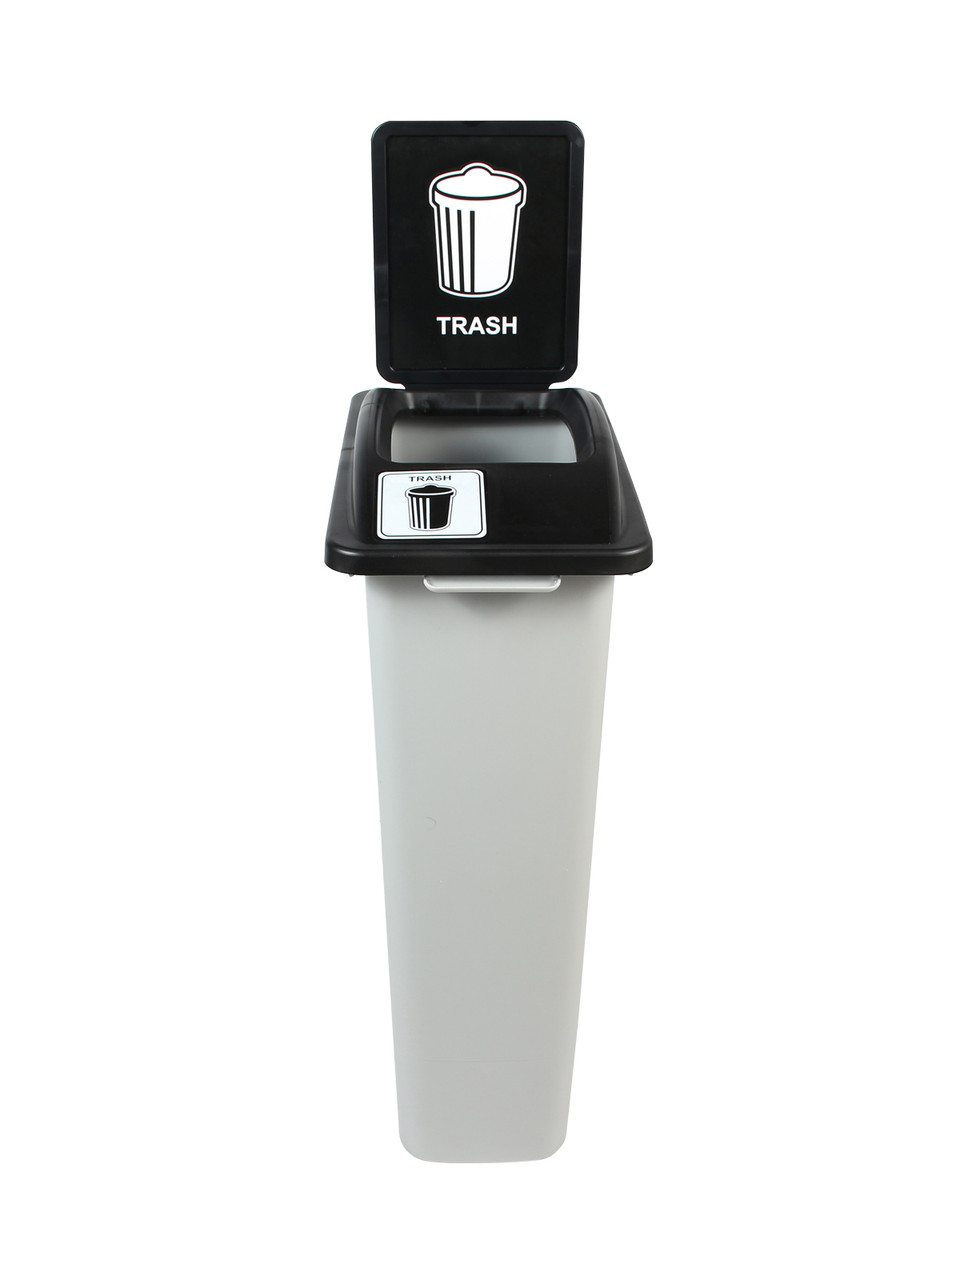 23 Gallon Skinny Simple Sort Trash Can with Sign